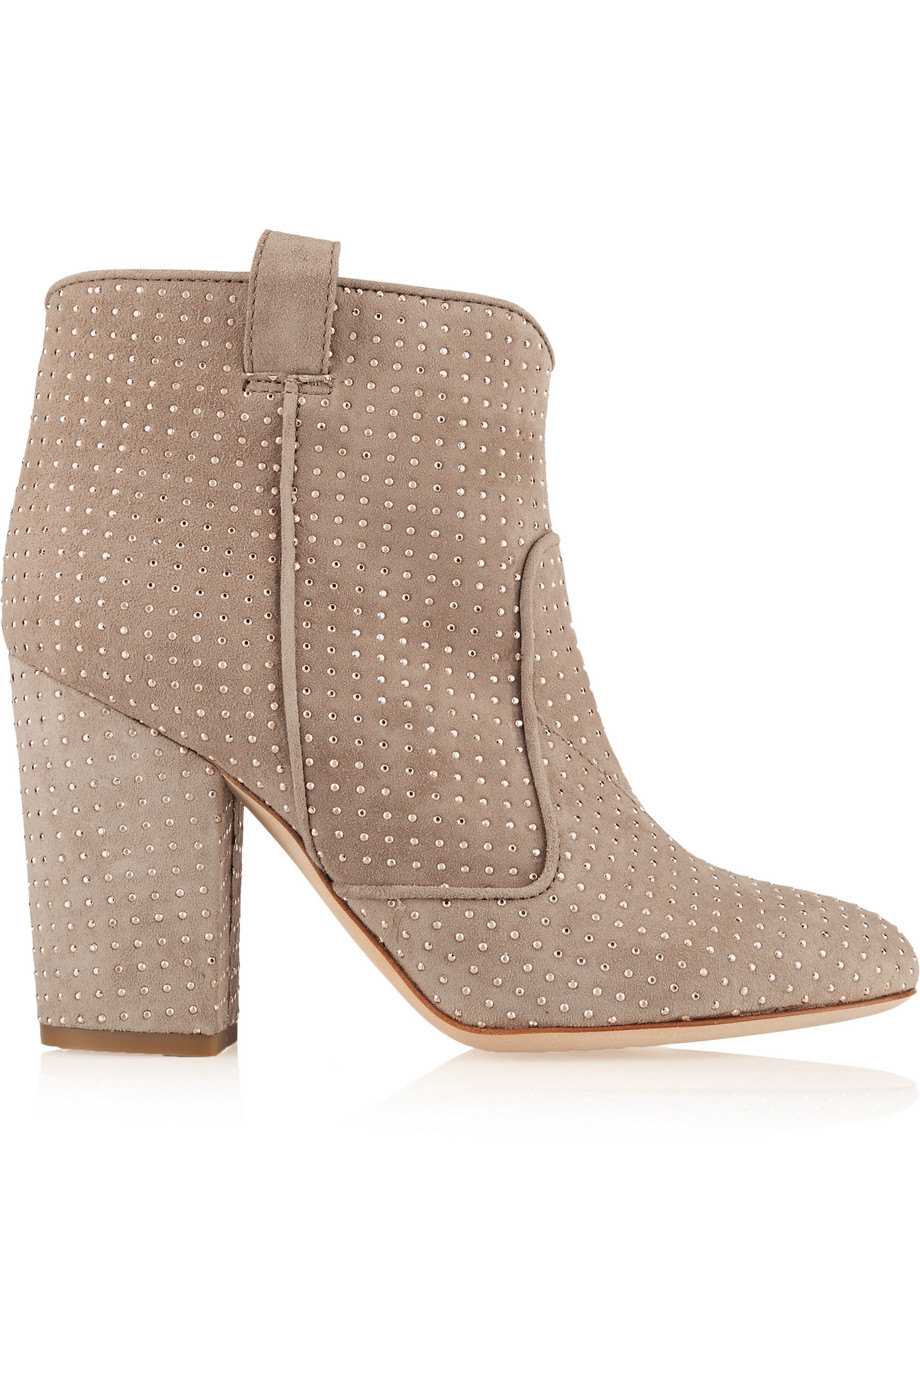 Laurence Dacade Pete Studded Suede Ankle Boots, Mushroom, Women's US Size: 7, Size: 37.5